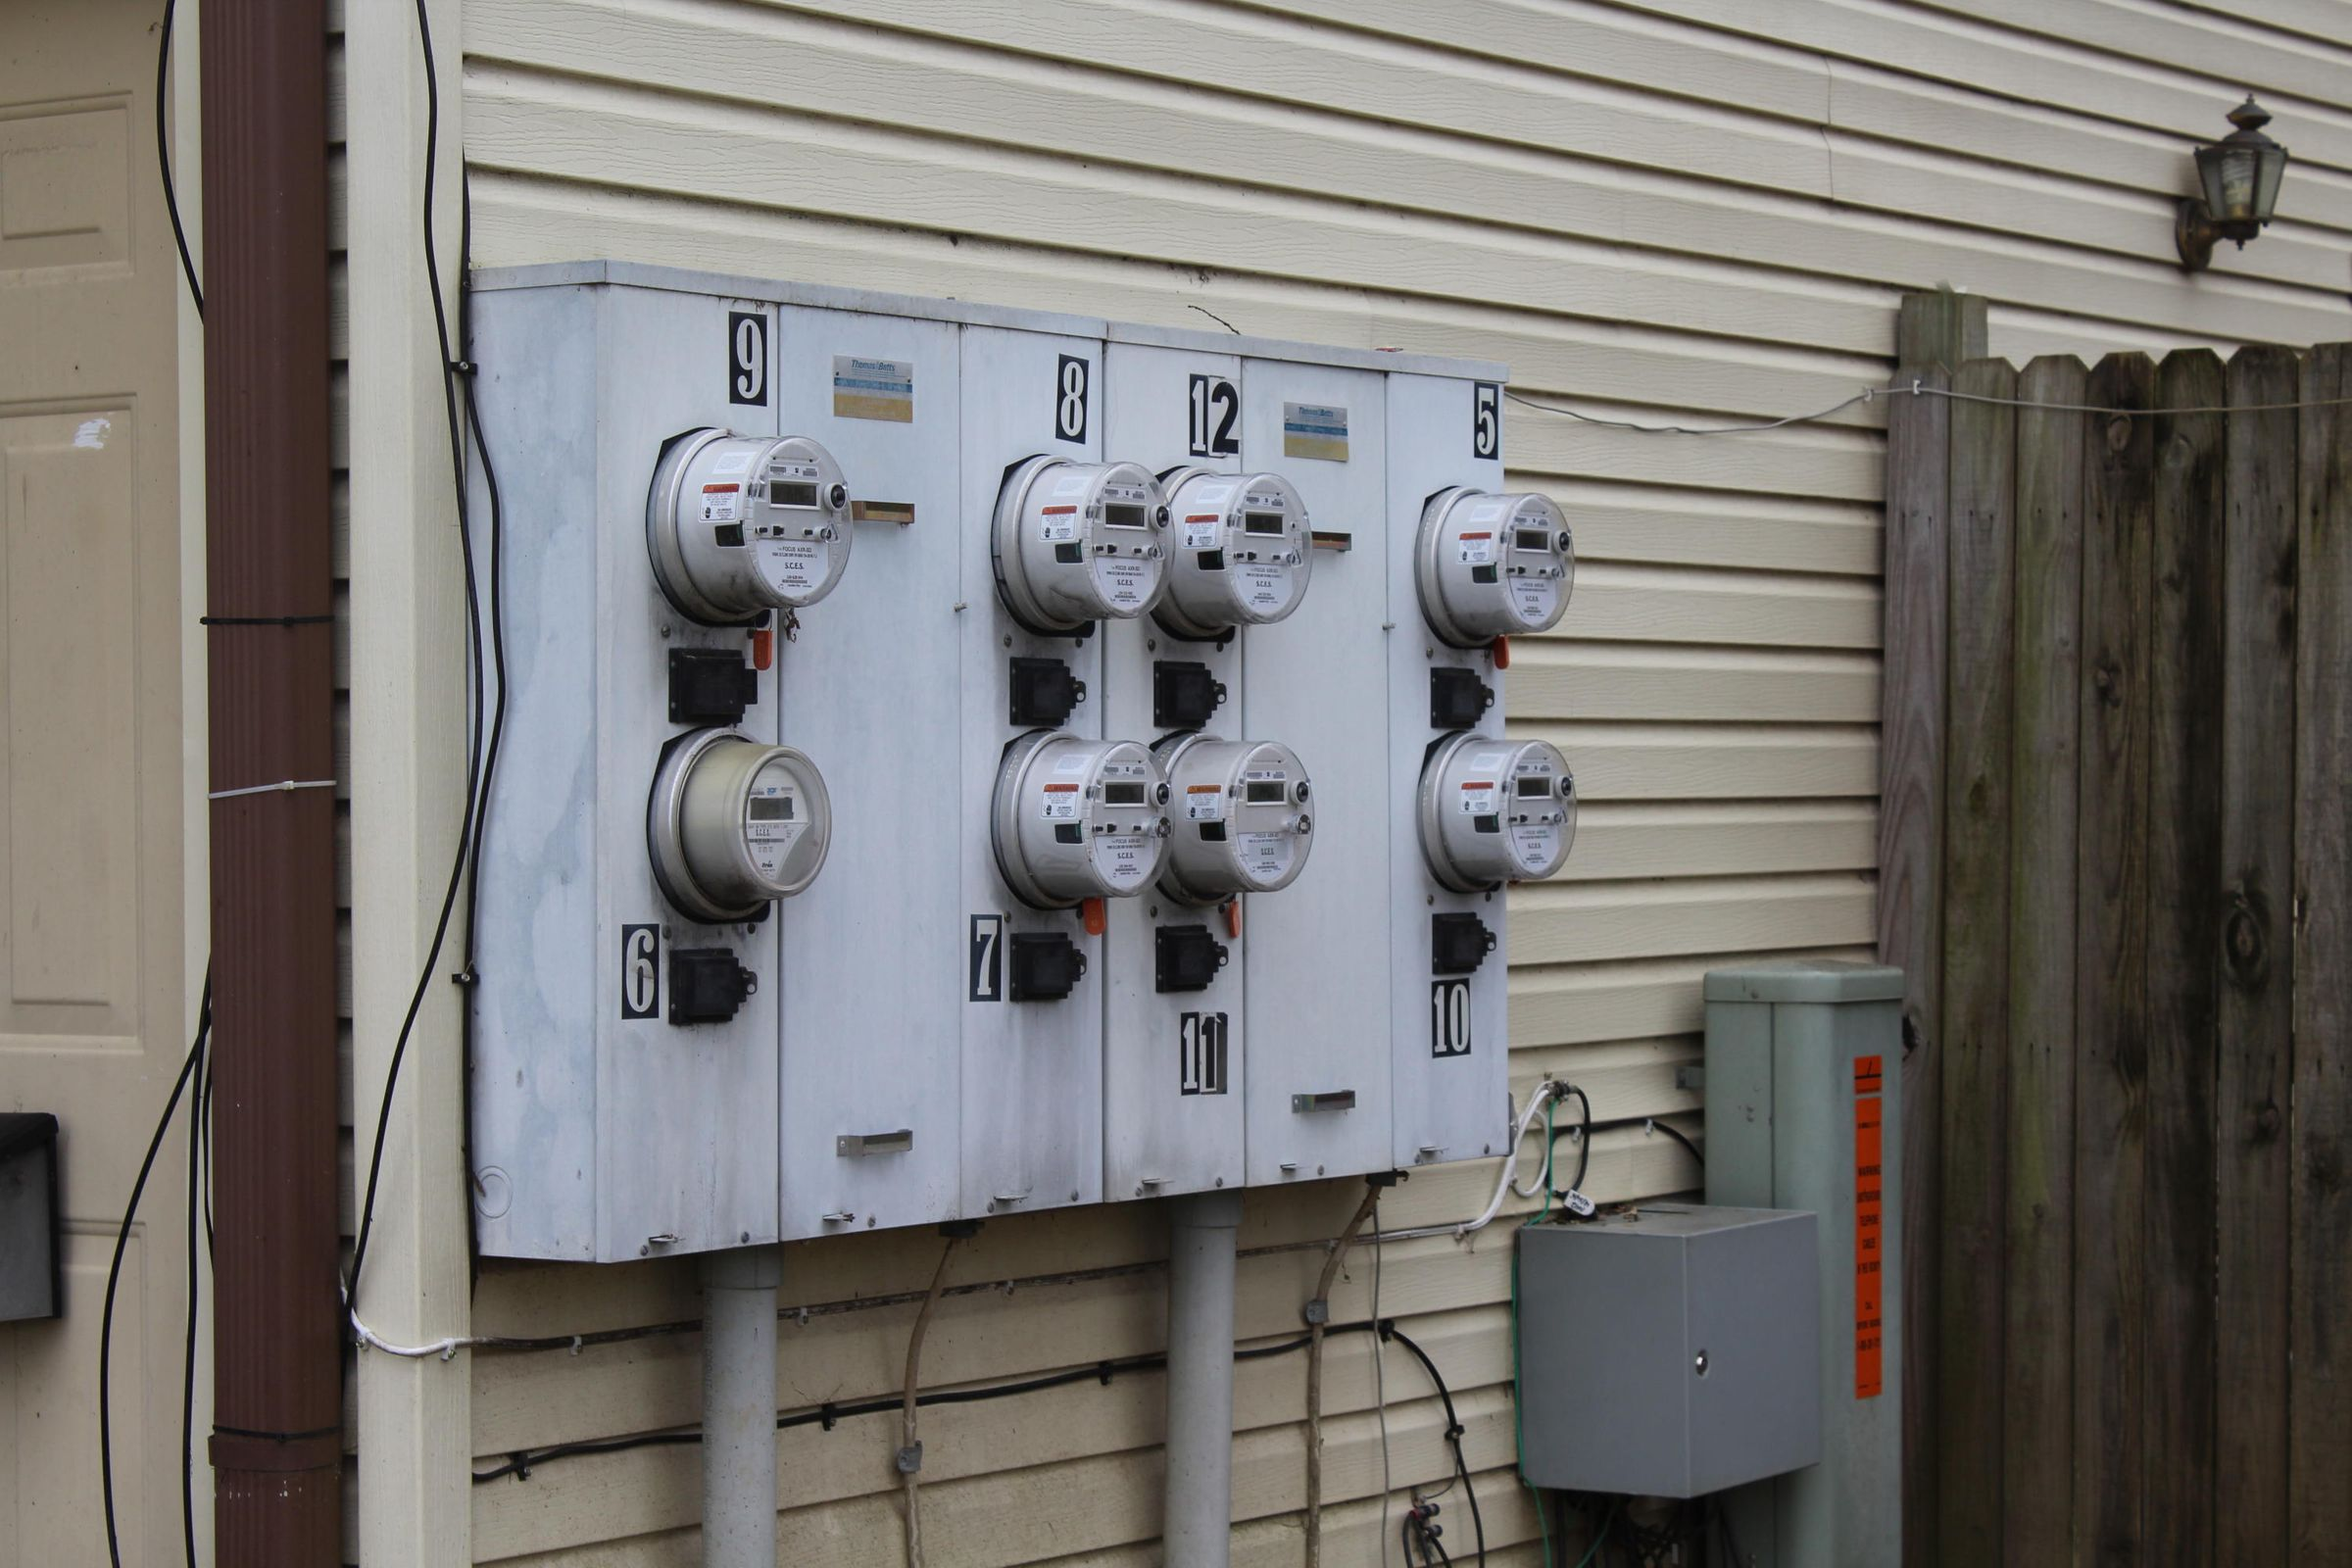 Electric panel on front building